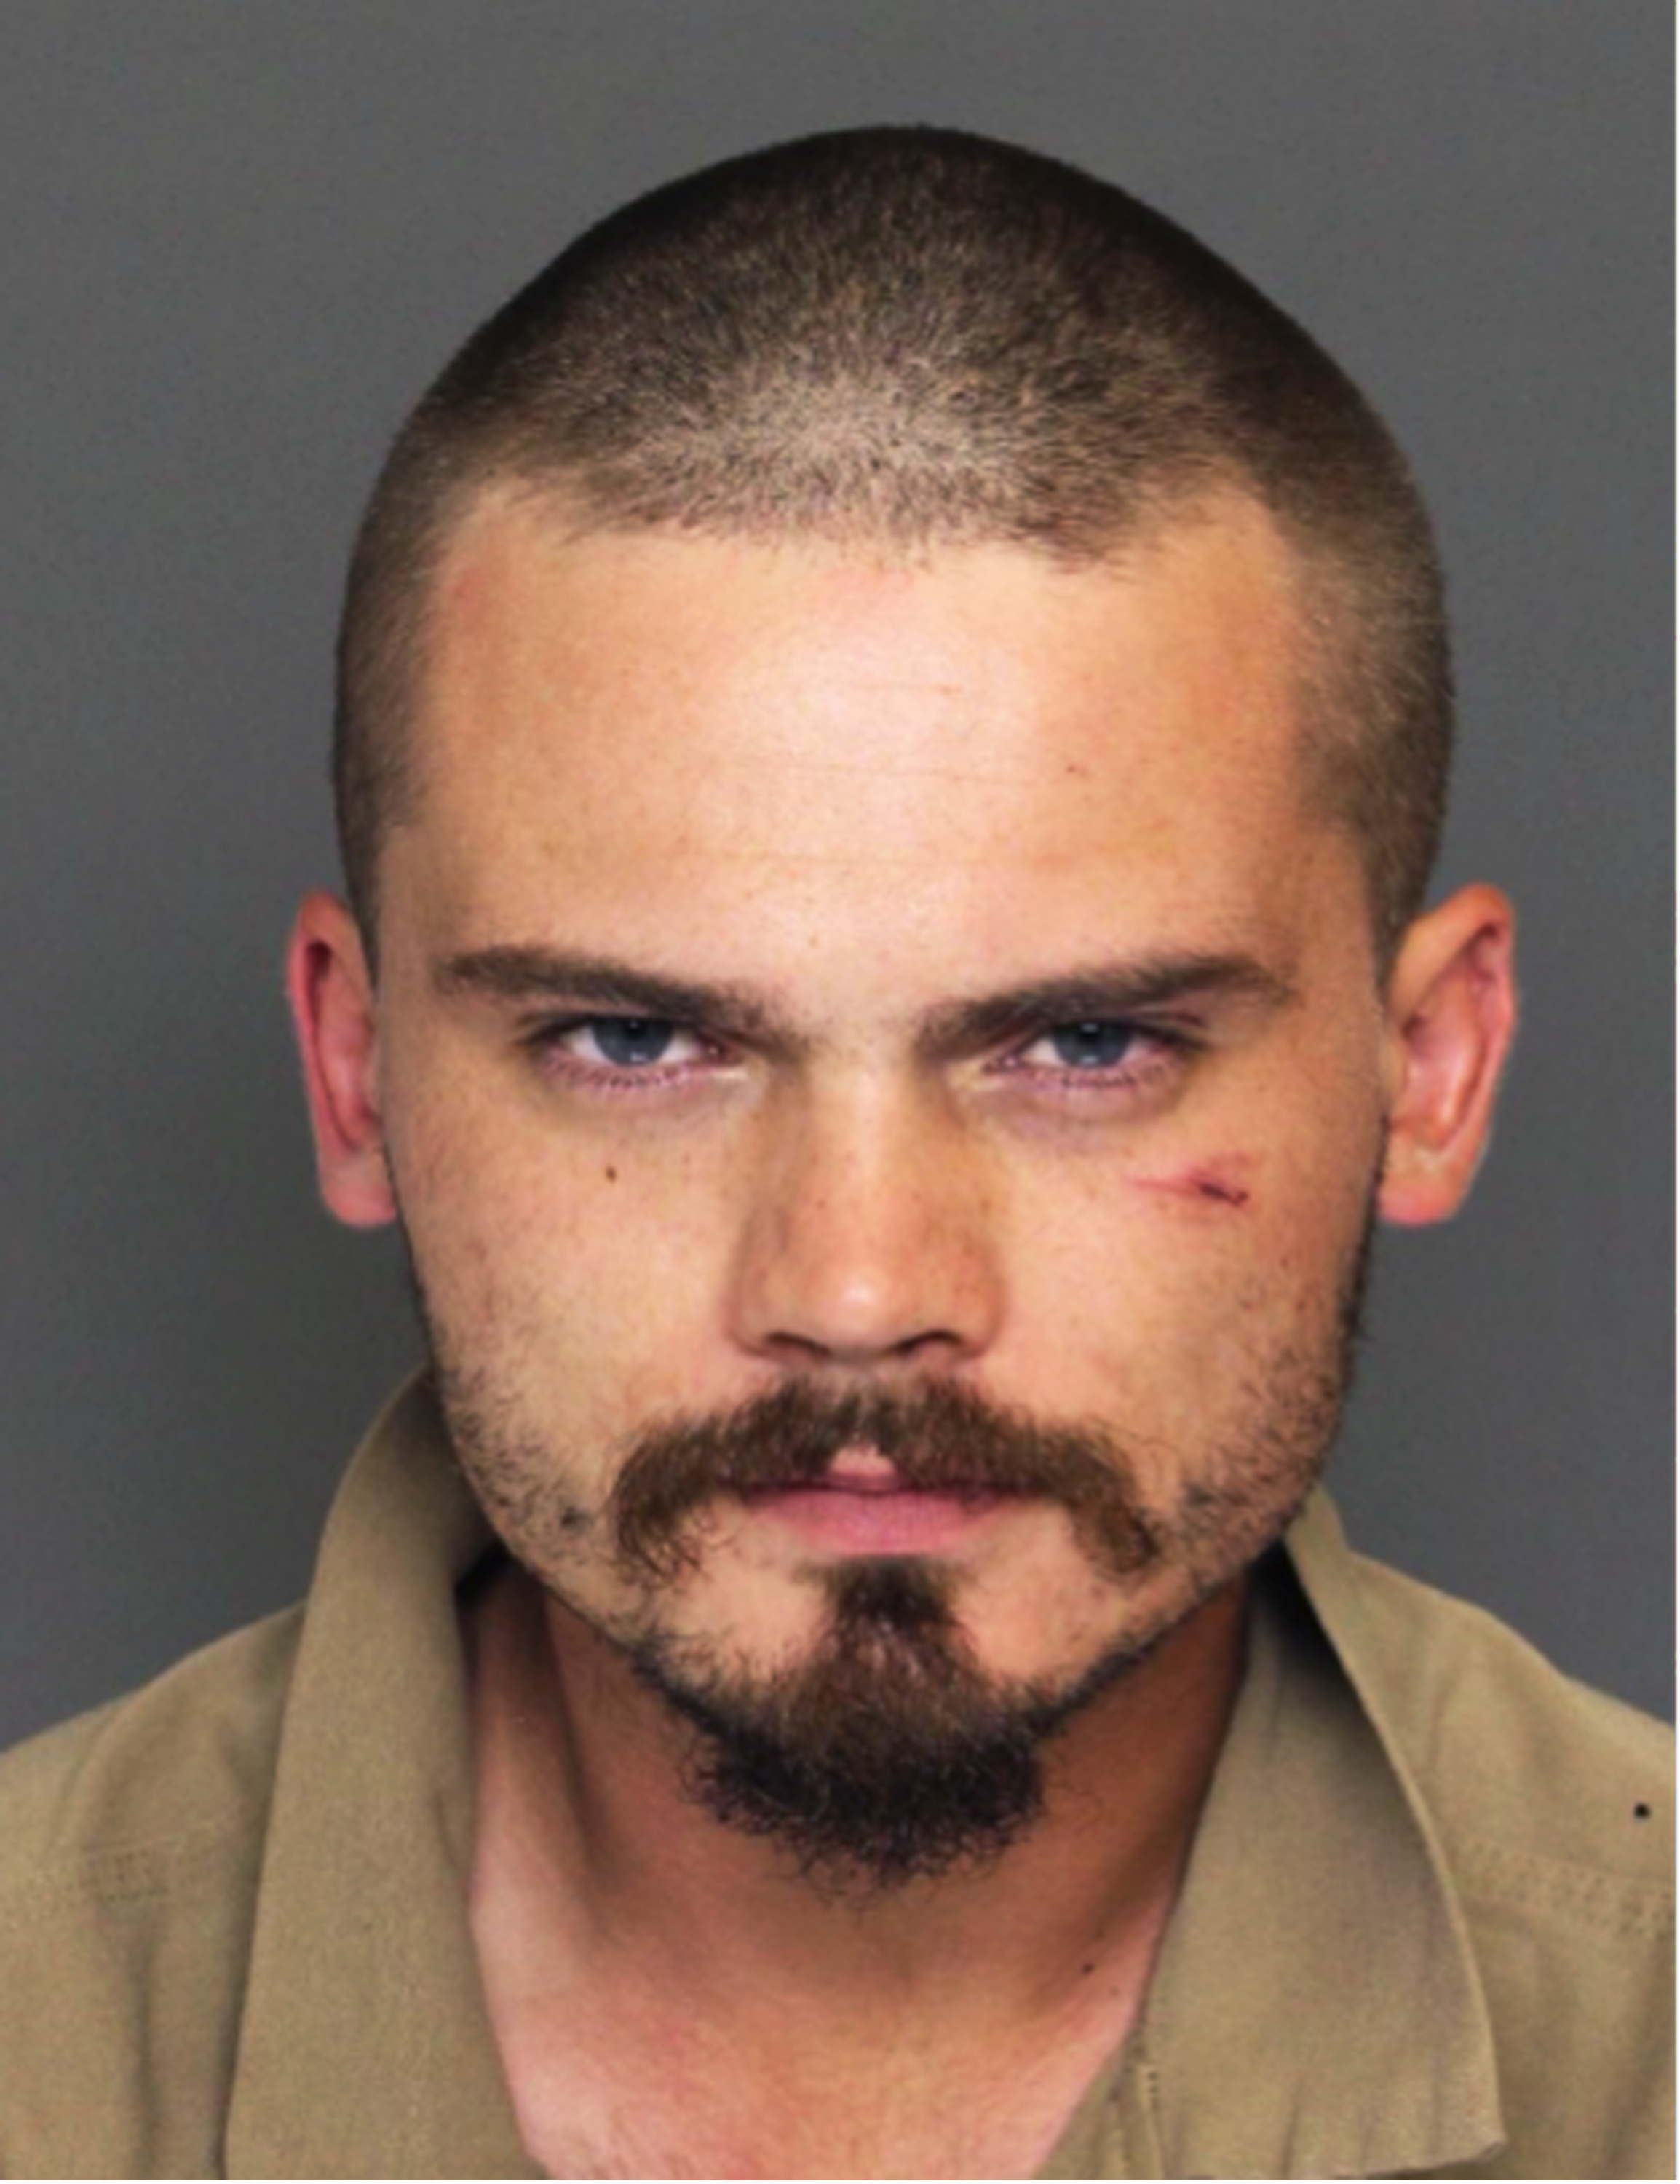 """This Wednesday, June 17, 2015 law enforcement booking photo provided by the Colleton County, S.C., Sheriff's Office shows former """"Star Wars"""" actor Jake Lloyd, who was booked as Jake Broadbent, after he allegedly lead deputies on a chase hitting speeds over 100 mph Wednesday at the Colleton County Detention Center, in Walterboro, S.C. Colleton County, South Carolina, Sheriff's Sgt. Kyle Strickland said Sunday  June 21, 2015, that deputies on Wednesday arrested a 26-year-old man they confirmed through a former talent agent was Jake Lloyd. Strickland said the man gave his name as Jake Broadbent. He played young Anakin Skywalker in the 1999 movie """"Star Wars: Episode I - The Phantom Menace."""" (Colleton County Sheriff's Office via AP)"""